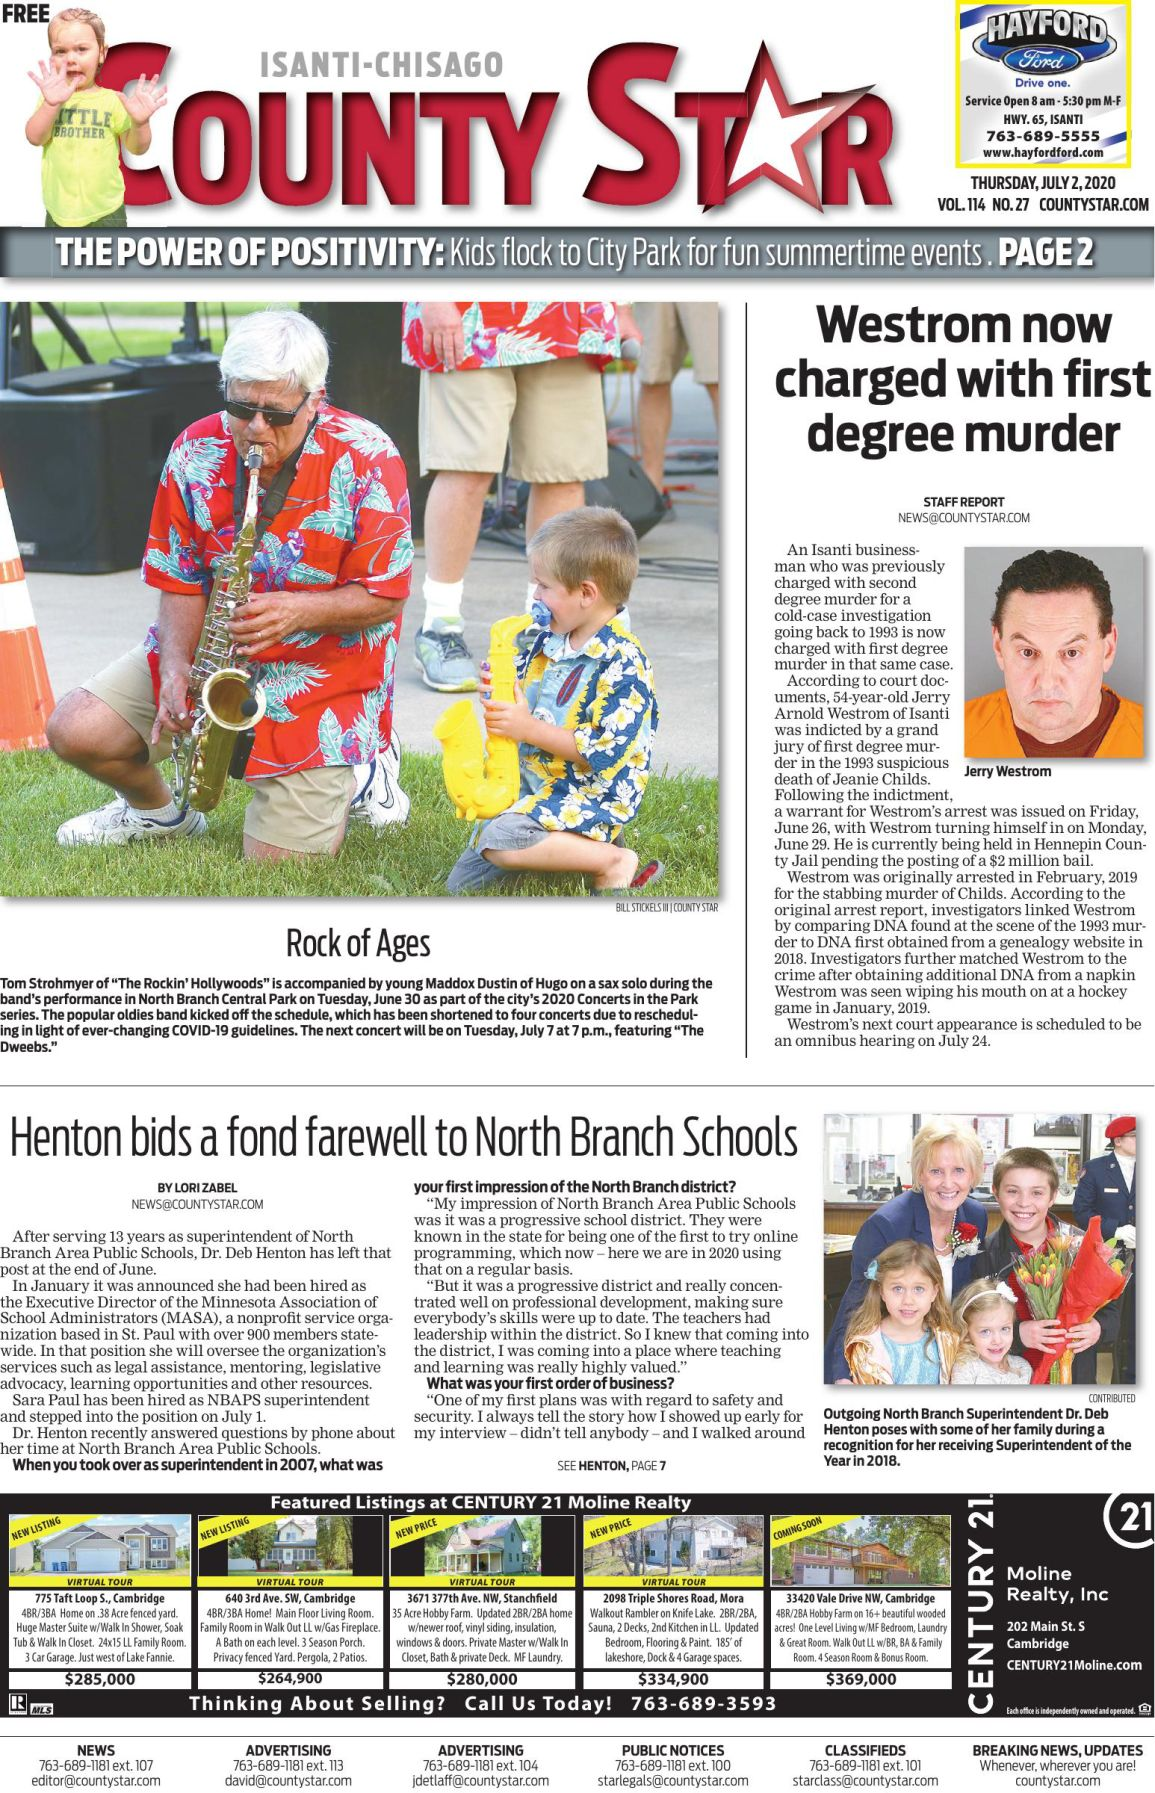 Isanti-Chisago County Star July 2, 2020 e-edition